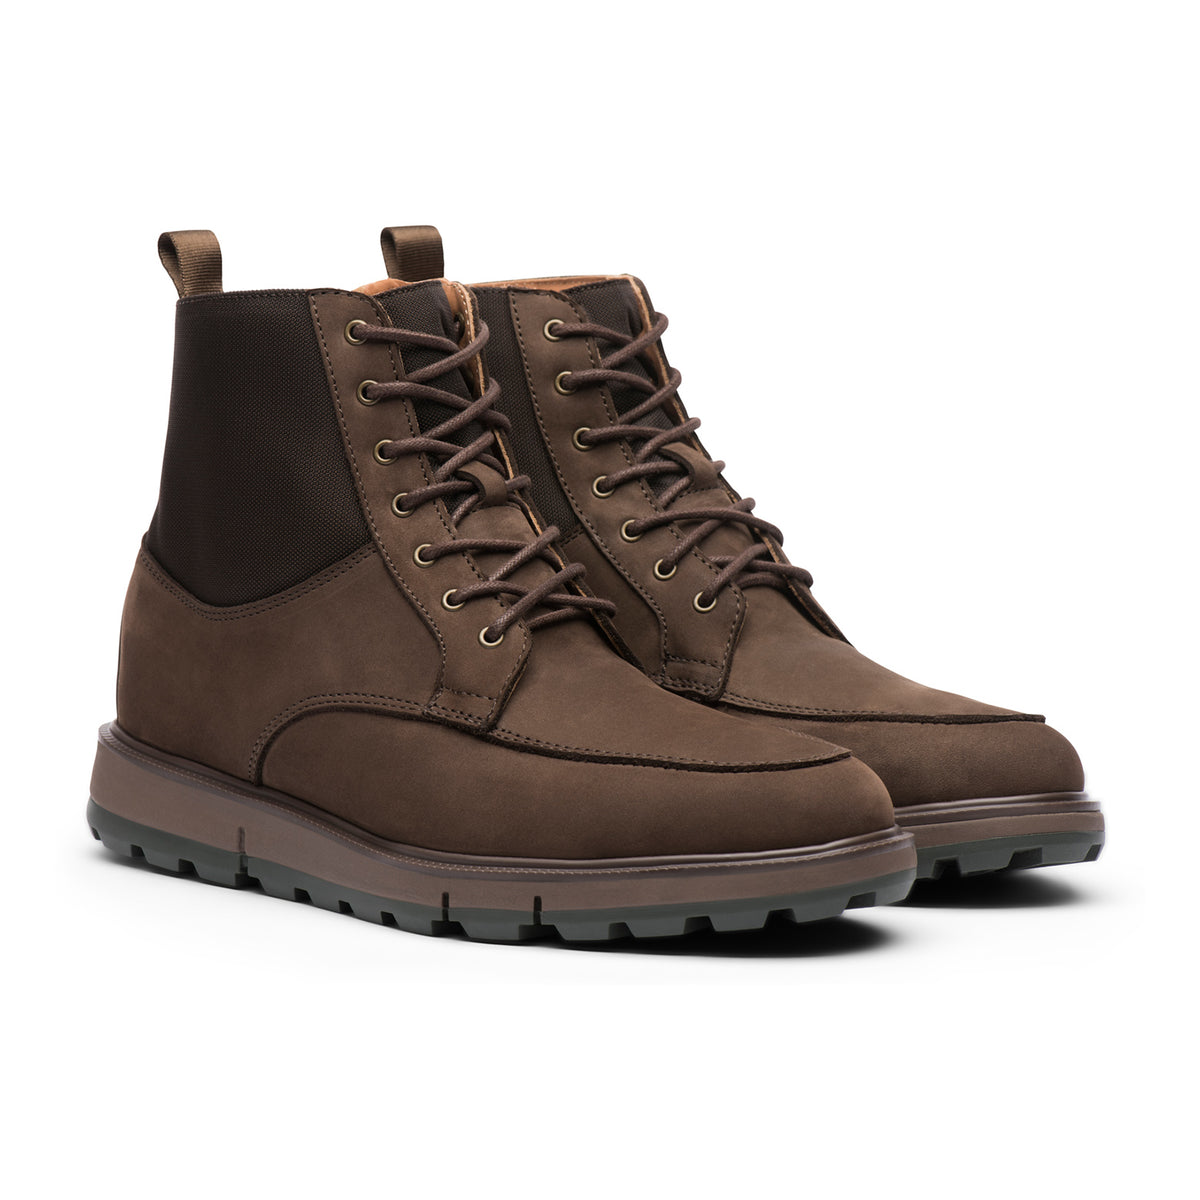 Motion Country Boot - background::white,variant::Brown/Olive